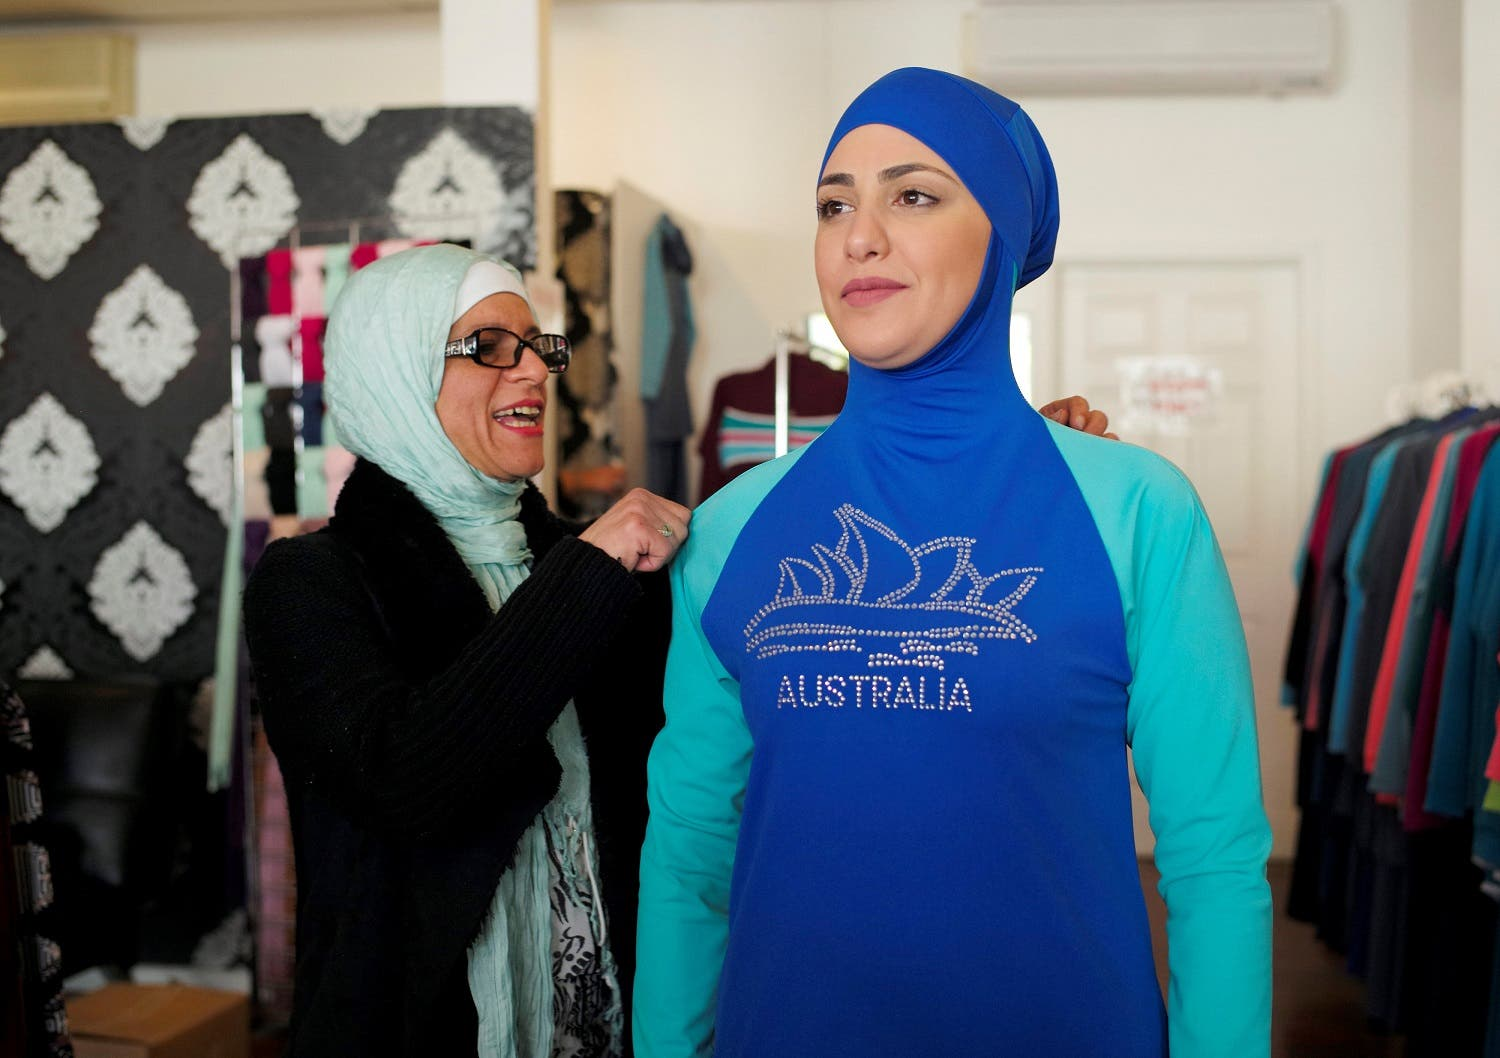 Aheda Zanetti, designer of the Burkini, adjusts one of the swim suits on model Salwa Elrashid at her fashion store in Sydney. (Reuters)